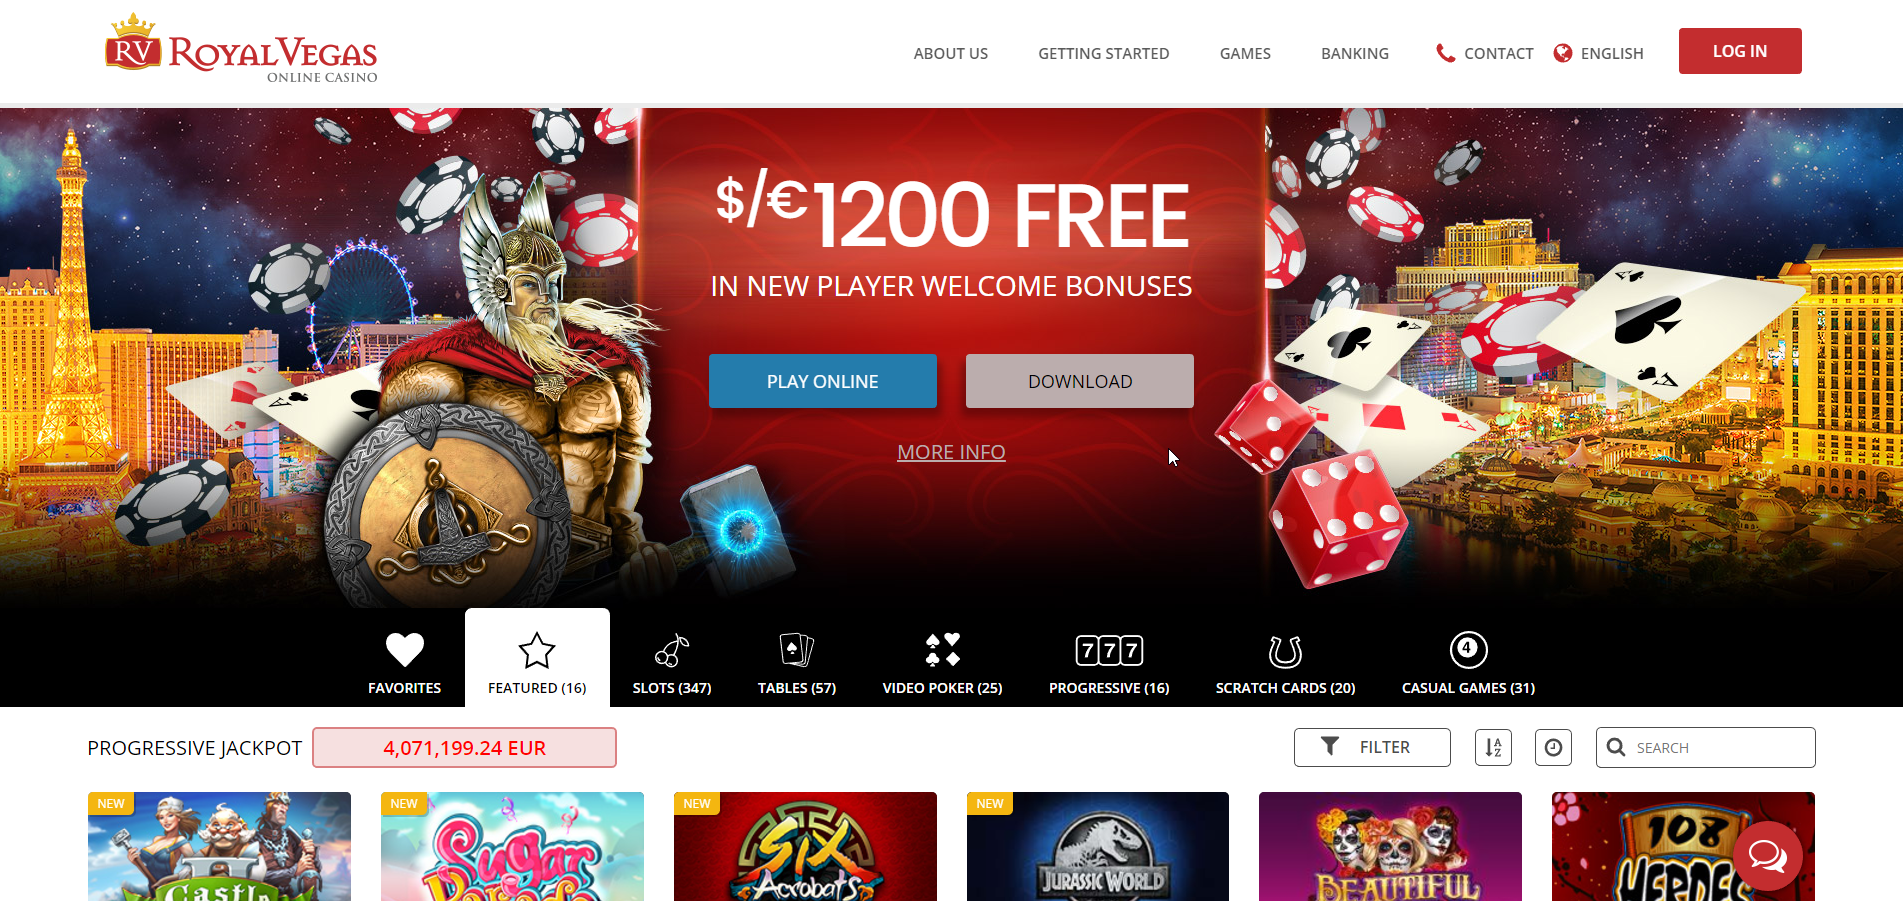 ENZO Casino Online Review With Promotions & Bonuses